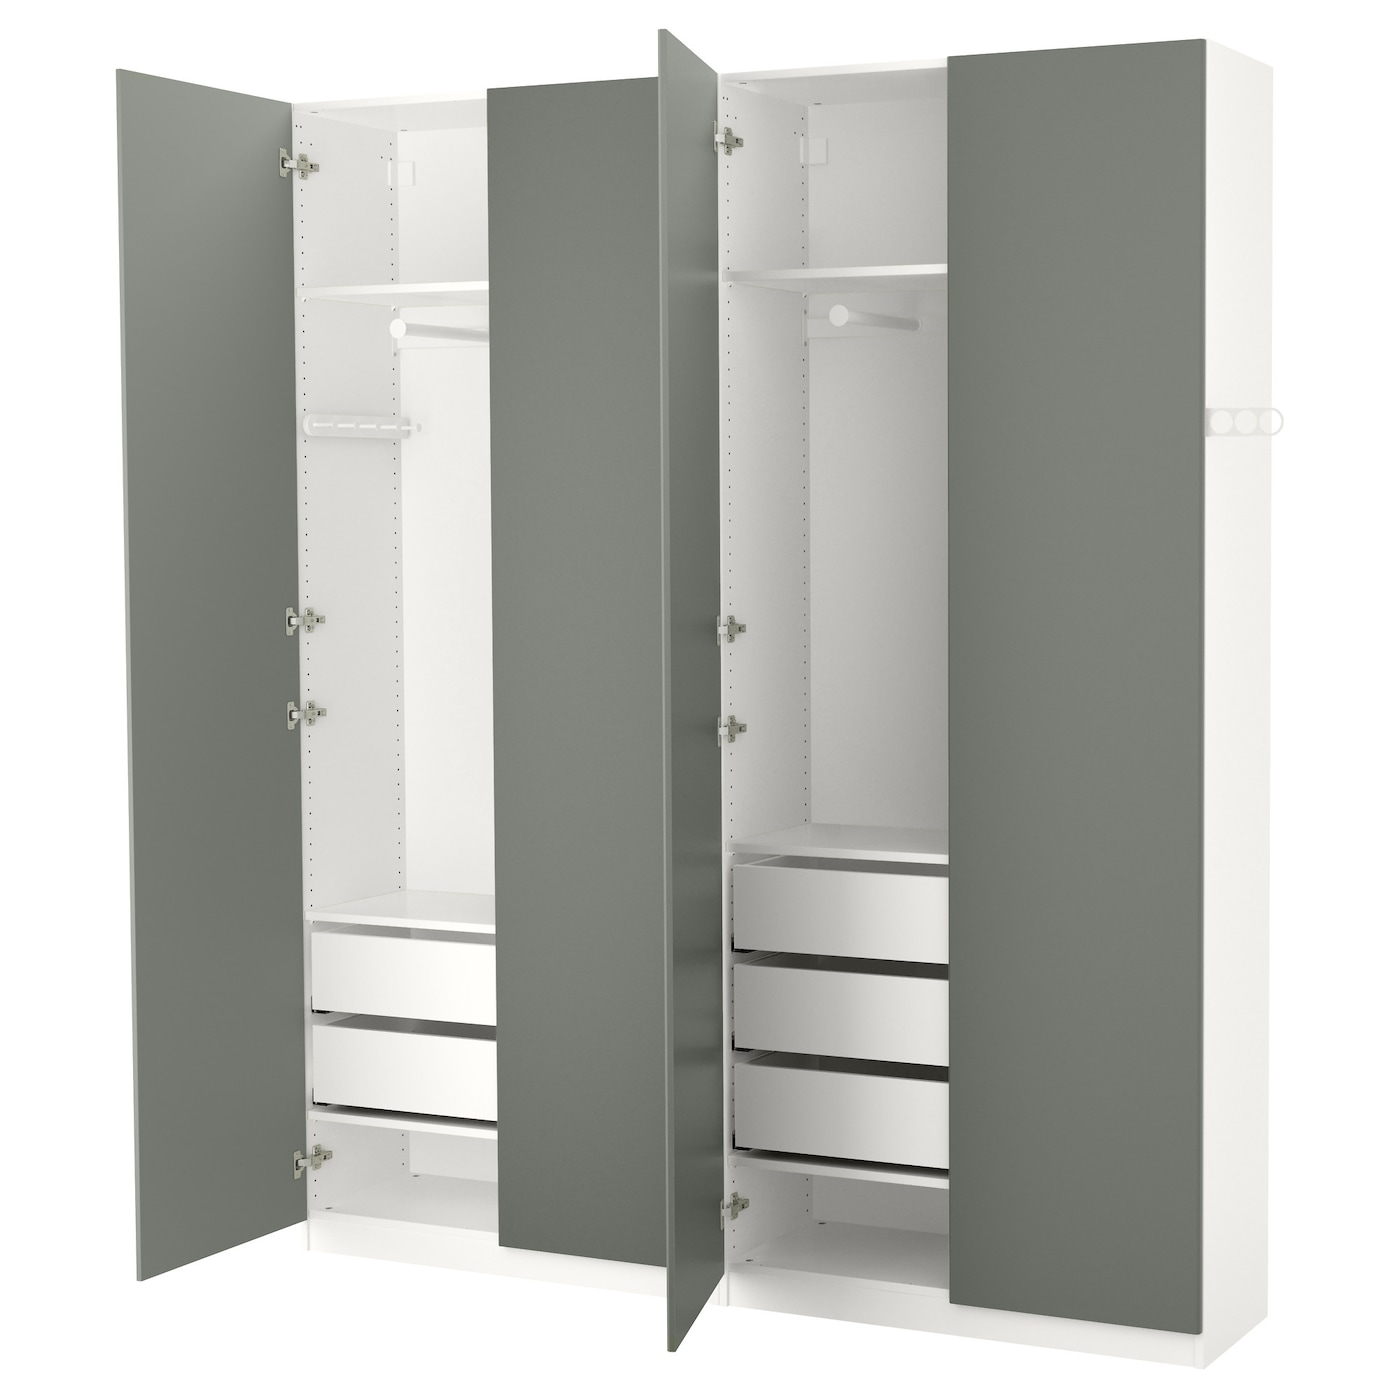 pax wardrobe white reinsvoll grey green 200x38x236 cm ikea. Black Bedroom Furniture Sets. Home Design Ideas